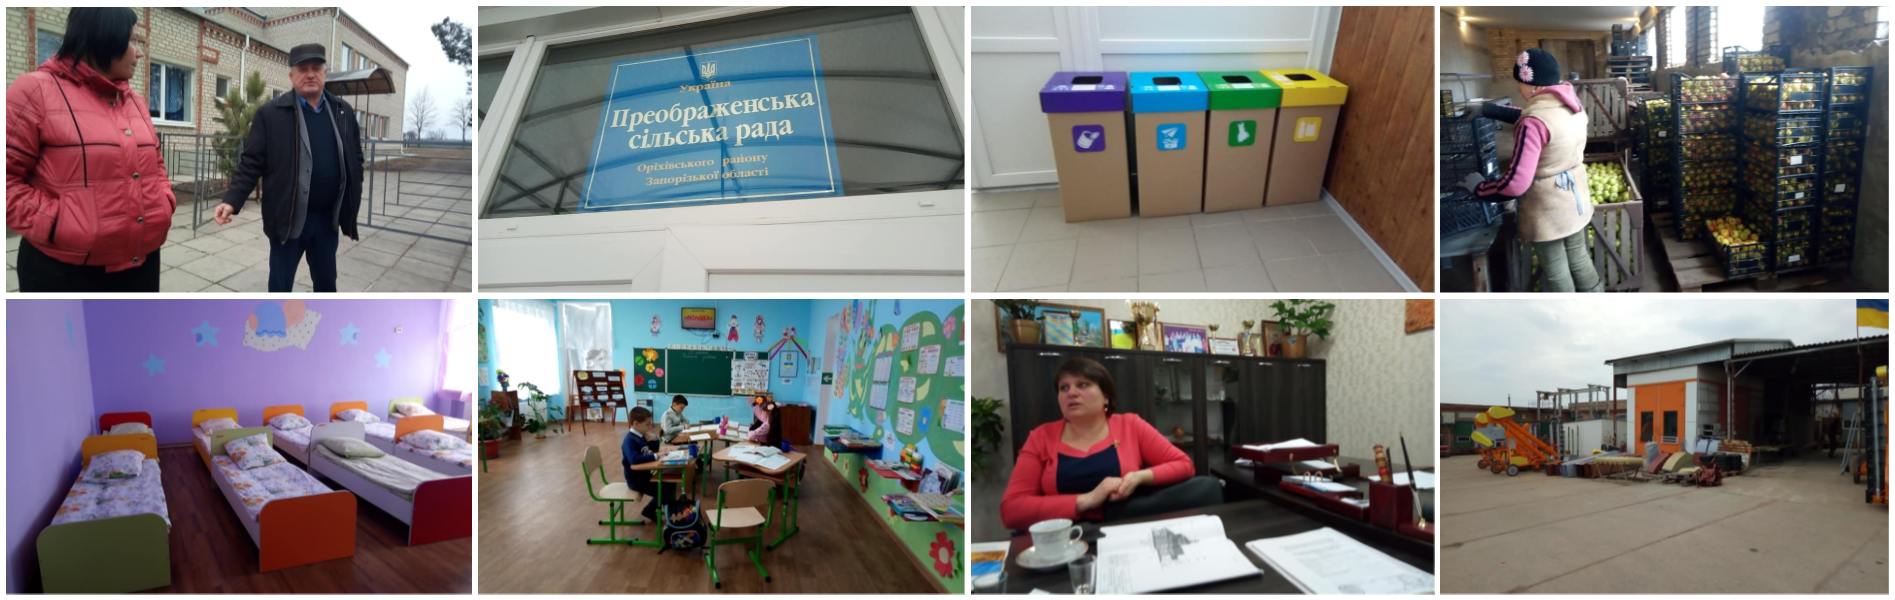 Hospital without waiting lines, new kindergartens, garden tourism, public information on LED screens and other features – success story of Preobrazhenska AH